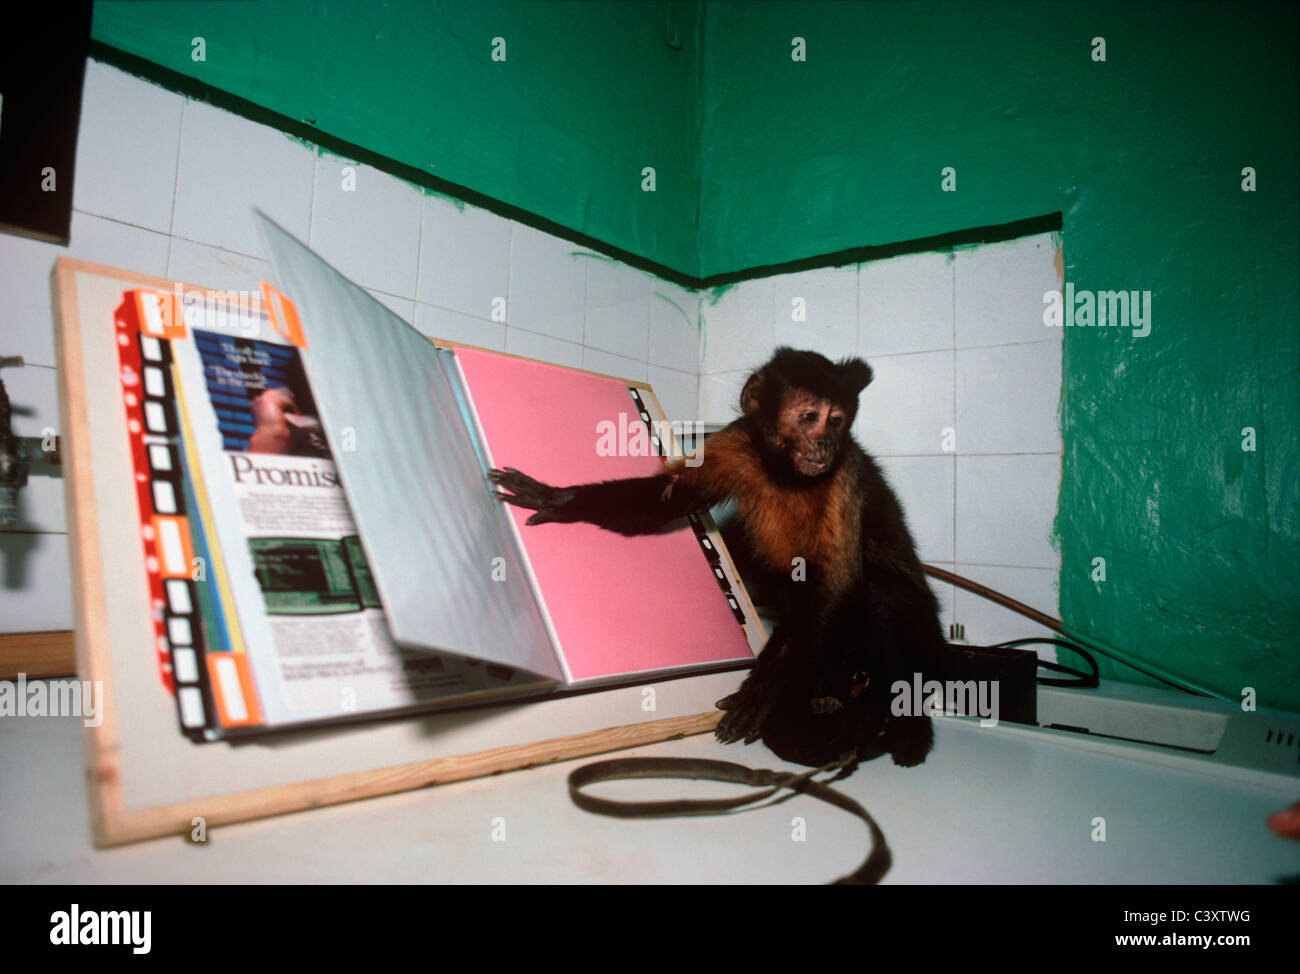 A capuchin monkey turns the page of a book, acting as an assistant for people with physical disabilities.  Tel Aviv, Stock Photo